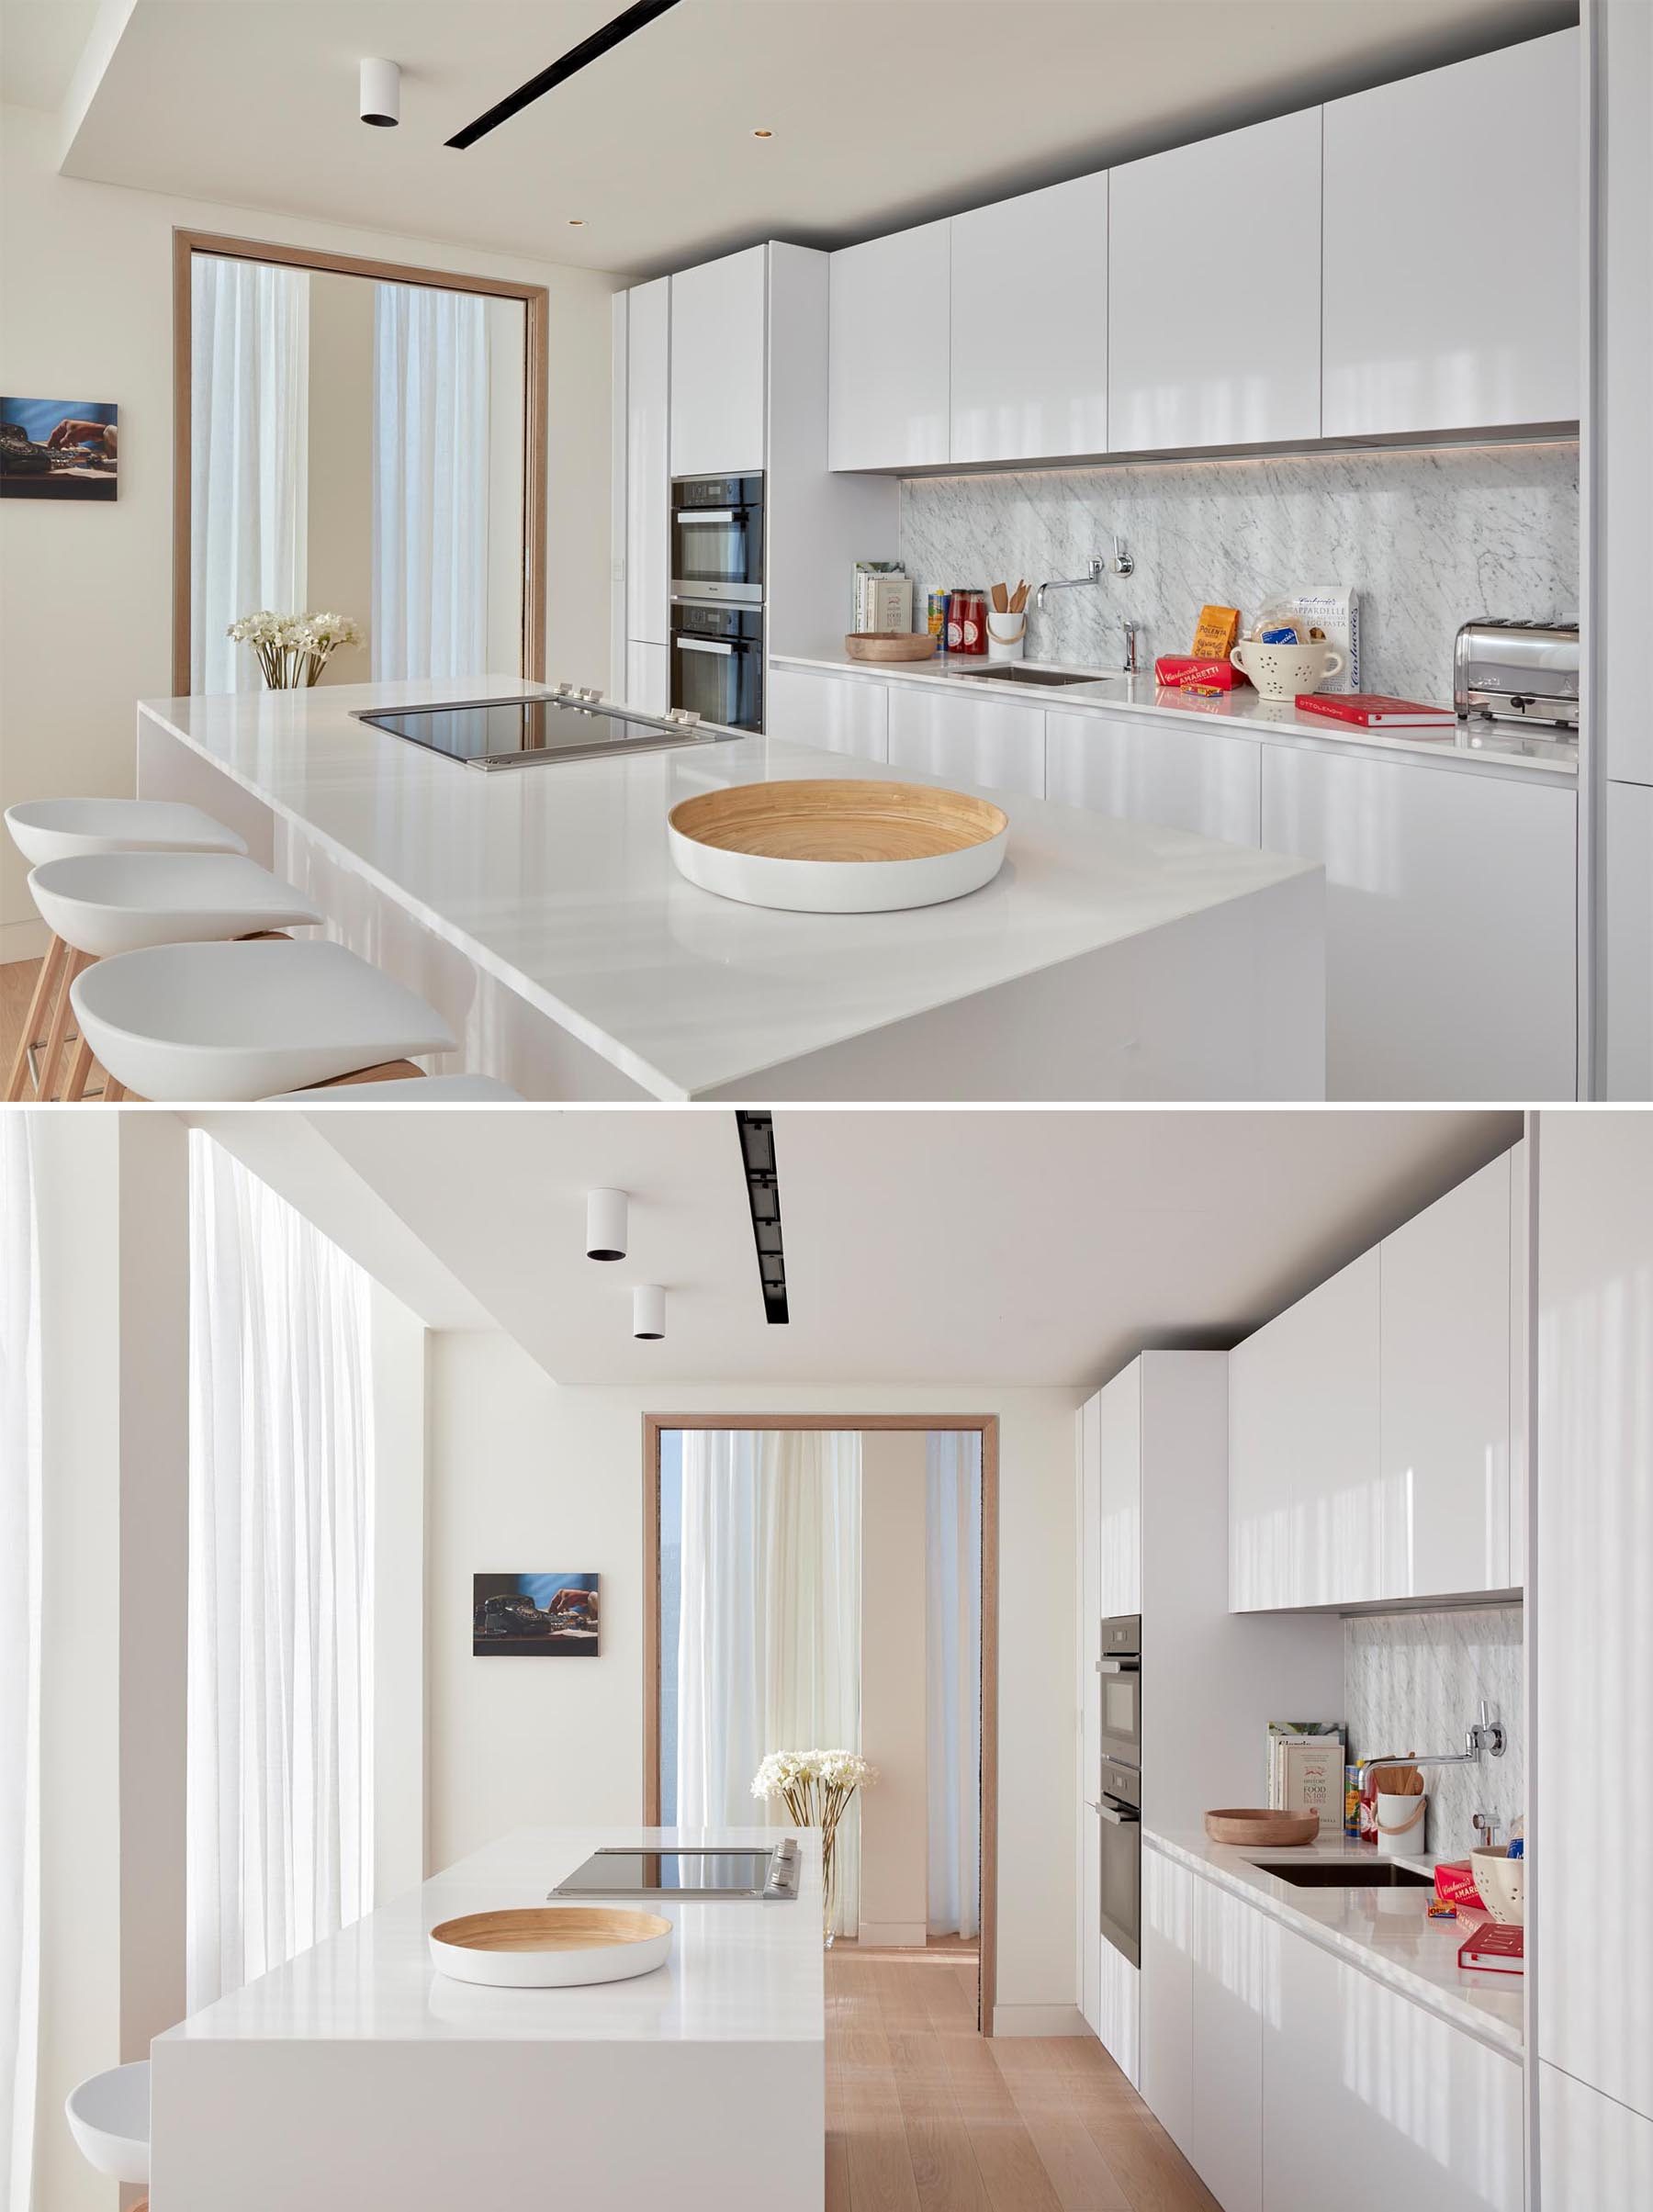 In this modern kitchen, minimalist white cabinets have been used to complement the white countertop and light backsplash.